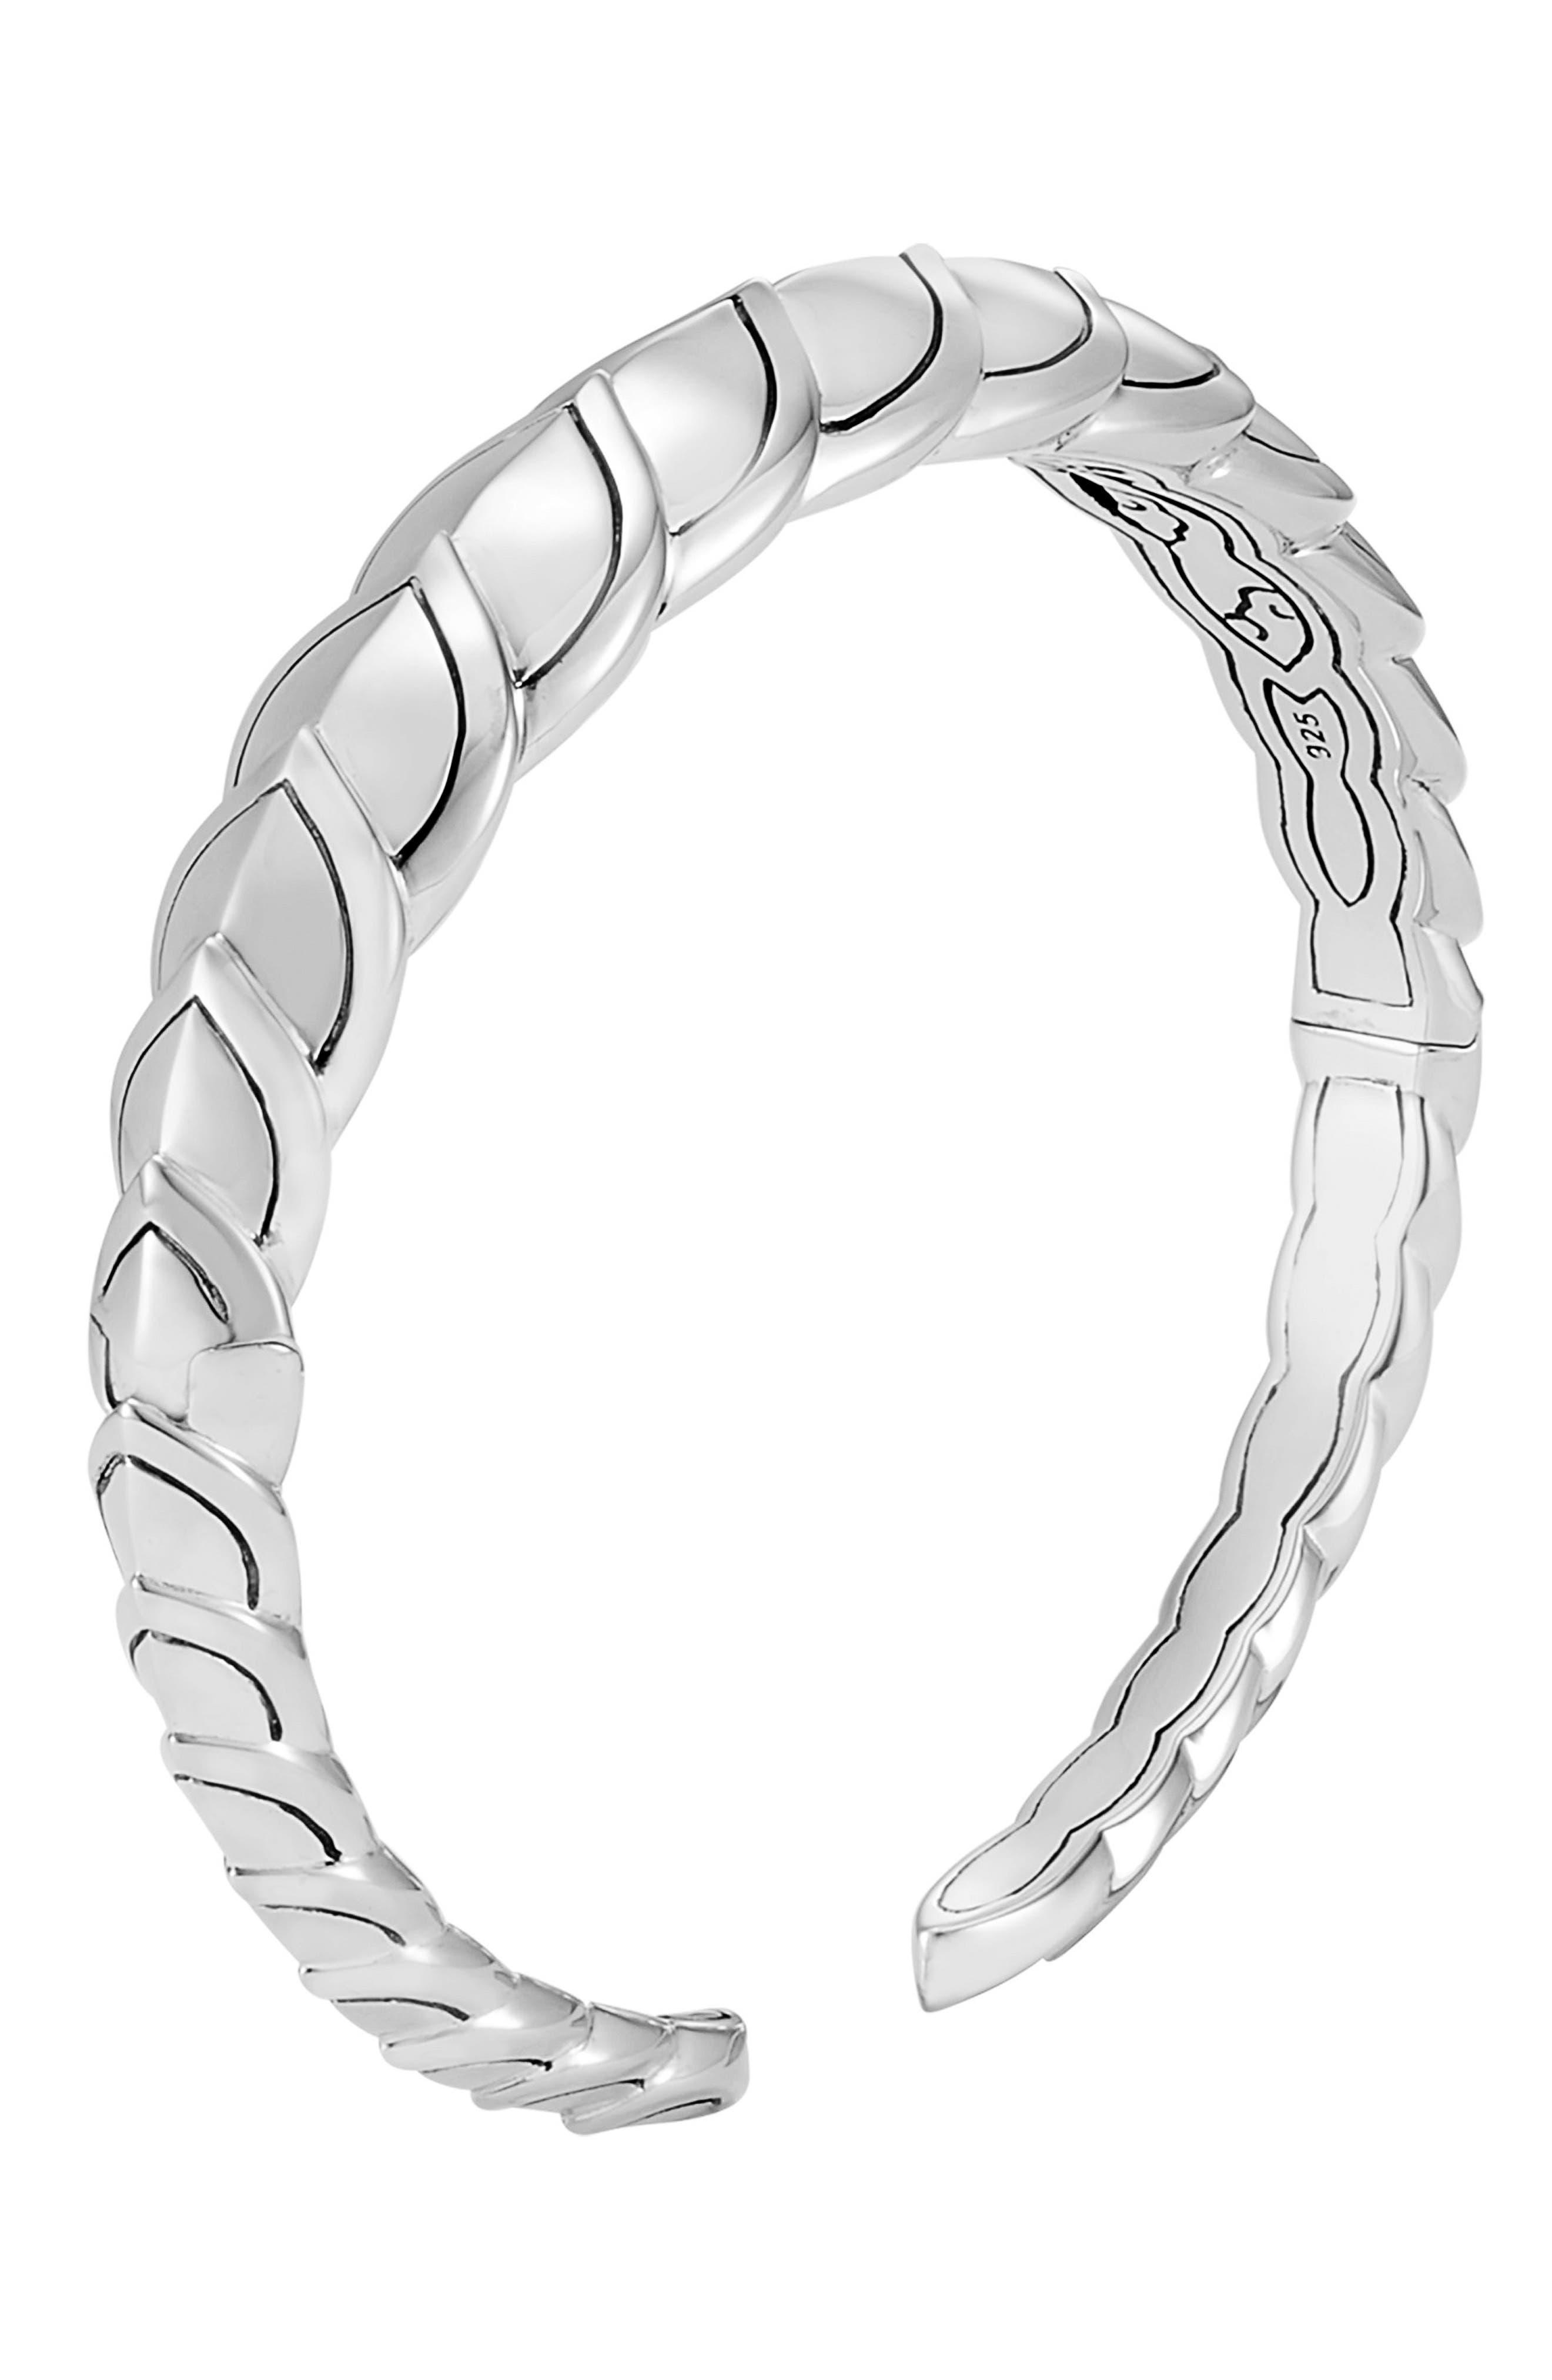 Legends Naga Small Flex Cuff Bracelet,                             Main thumbnail 1, color,                             Silver